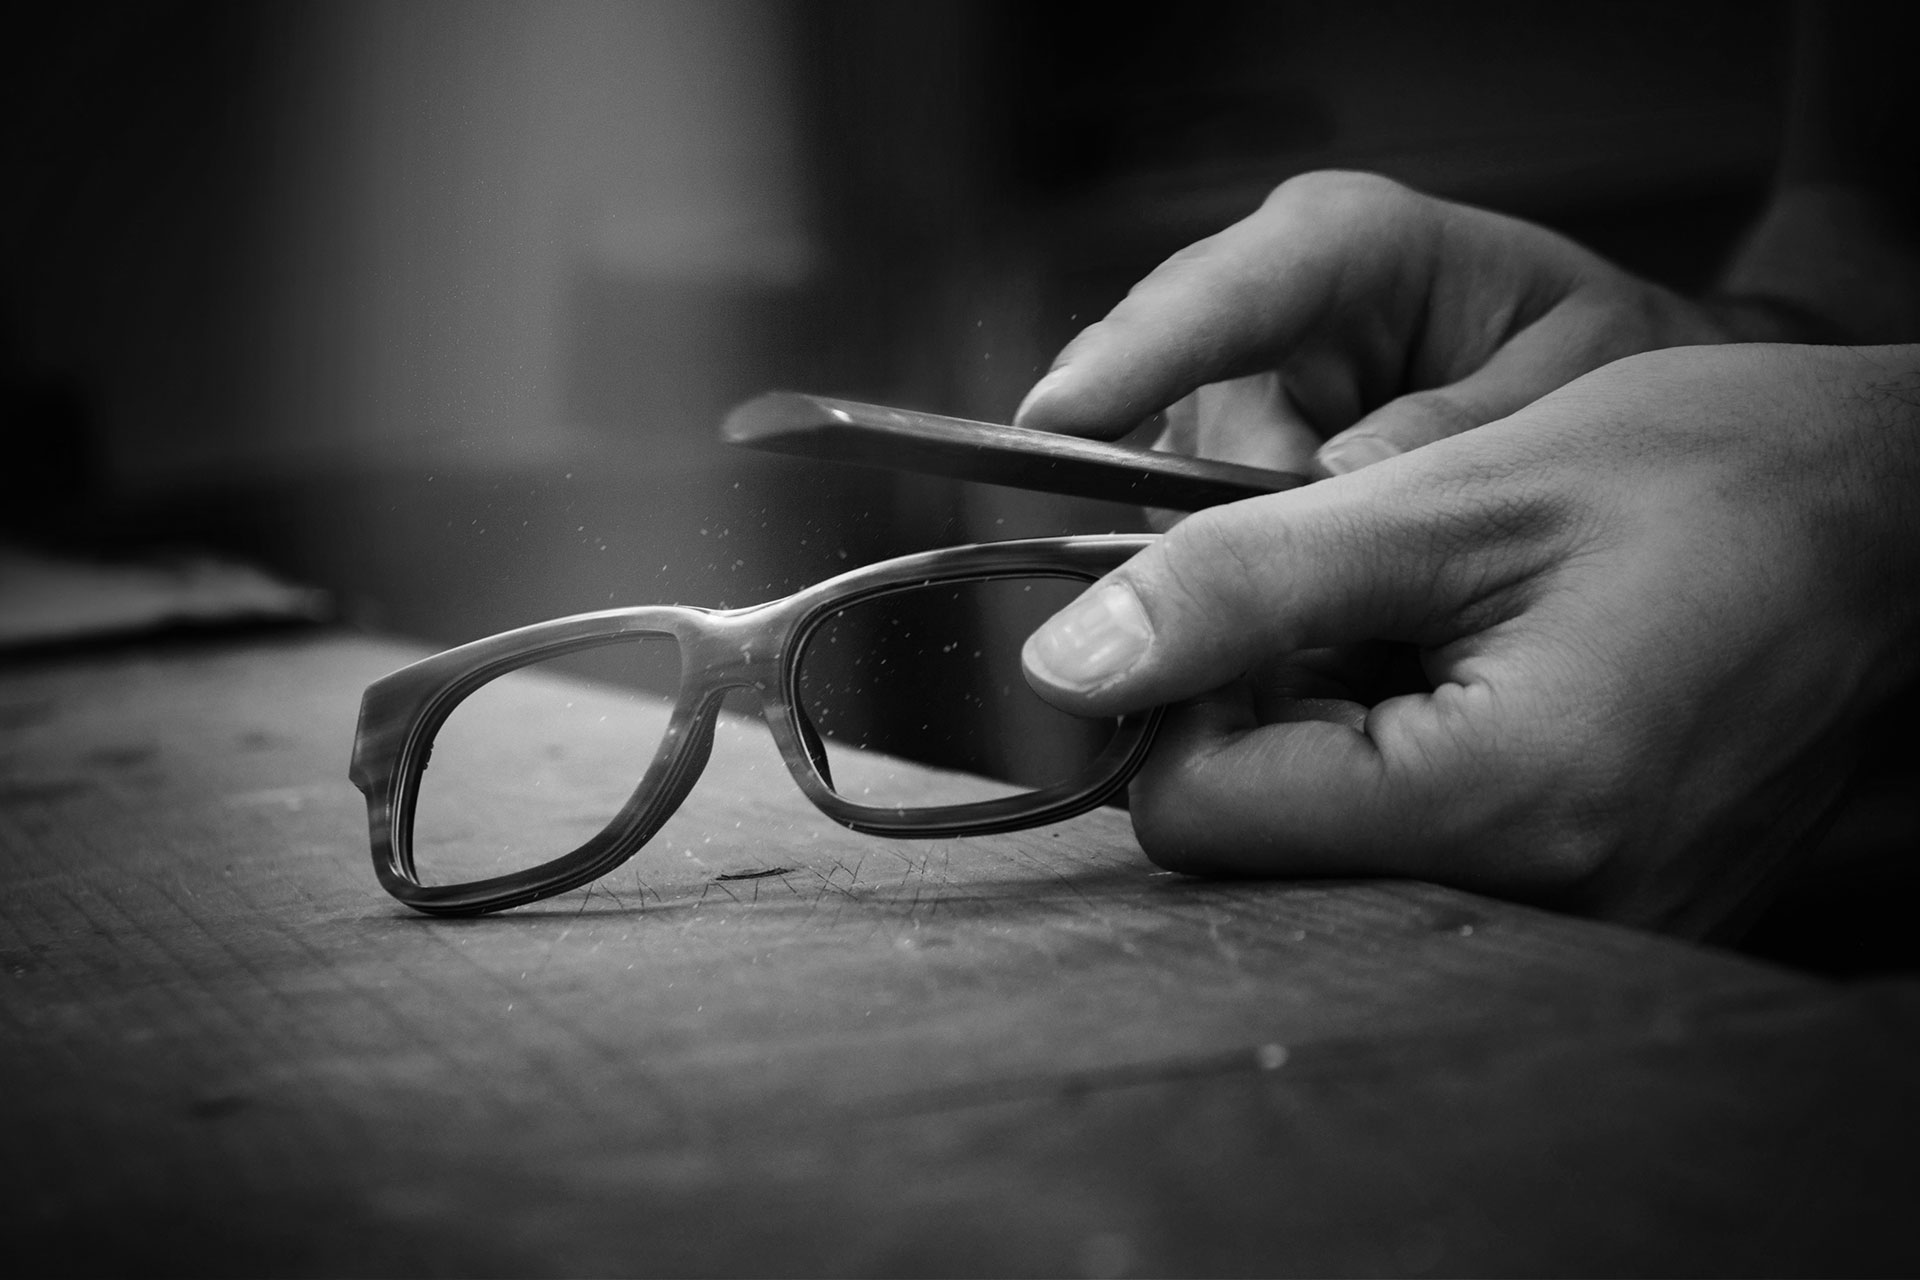 Tom Davies frames being filed by hand at the brand's London factory